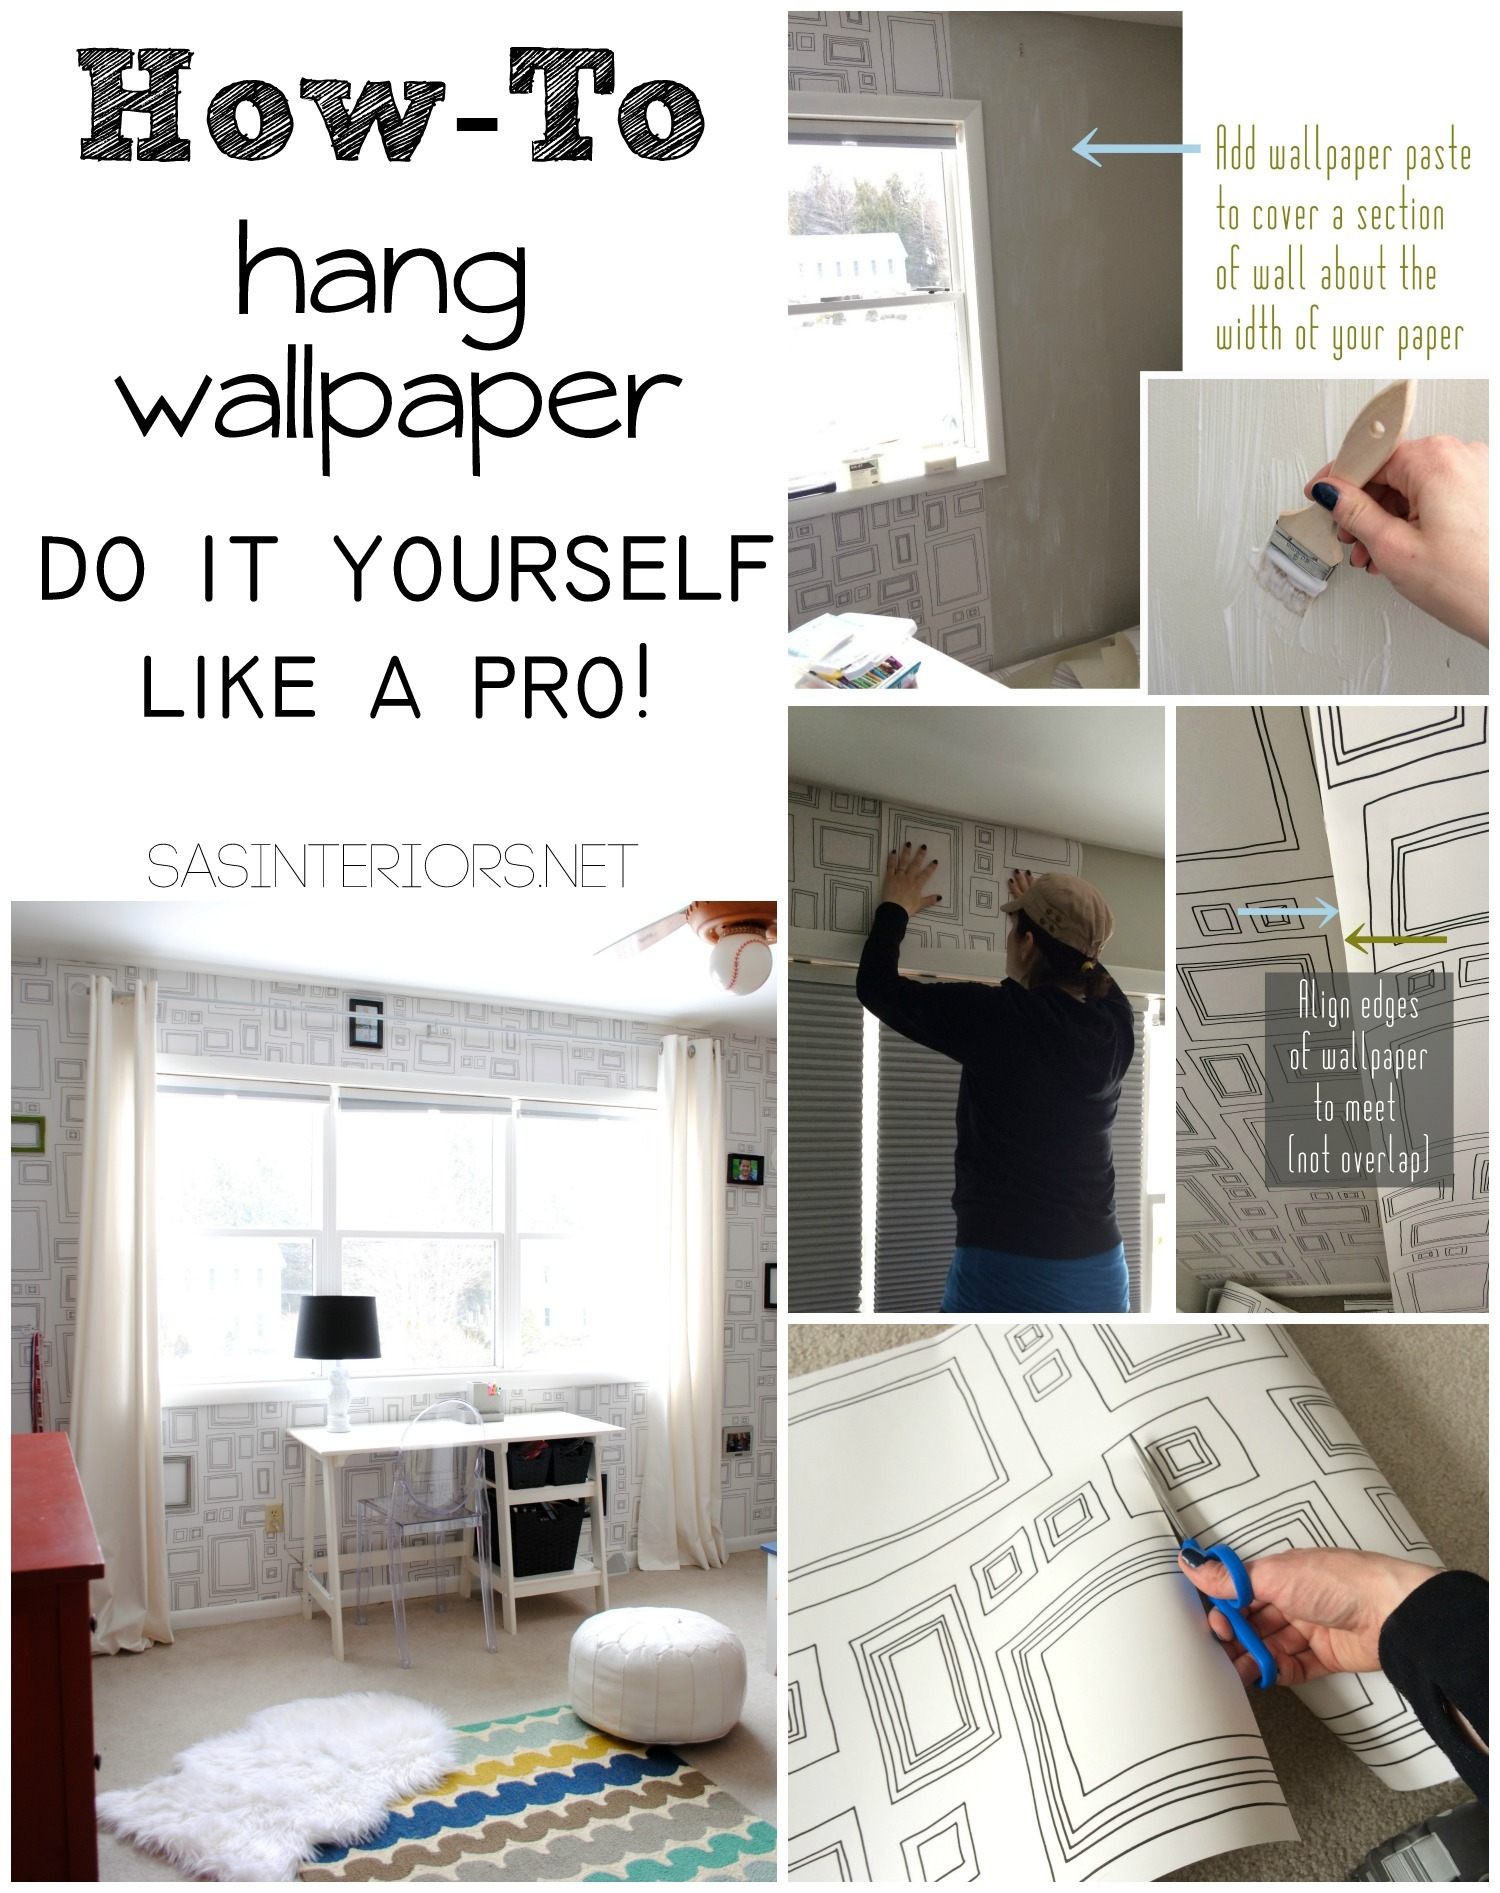 How To Do Wallpaper On The Wall